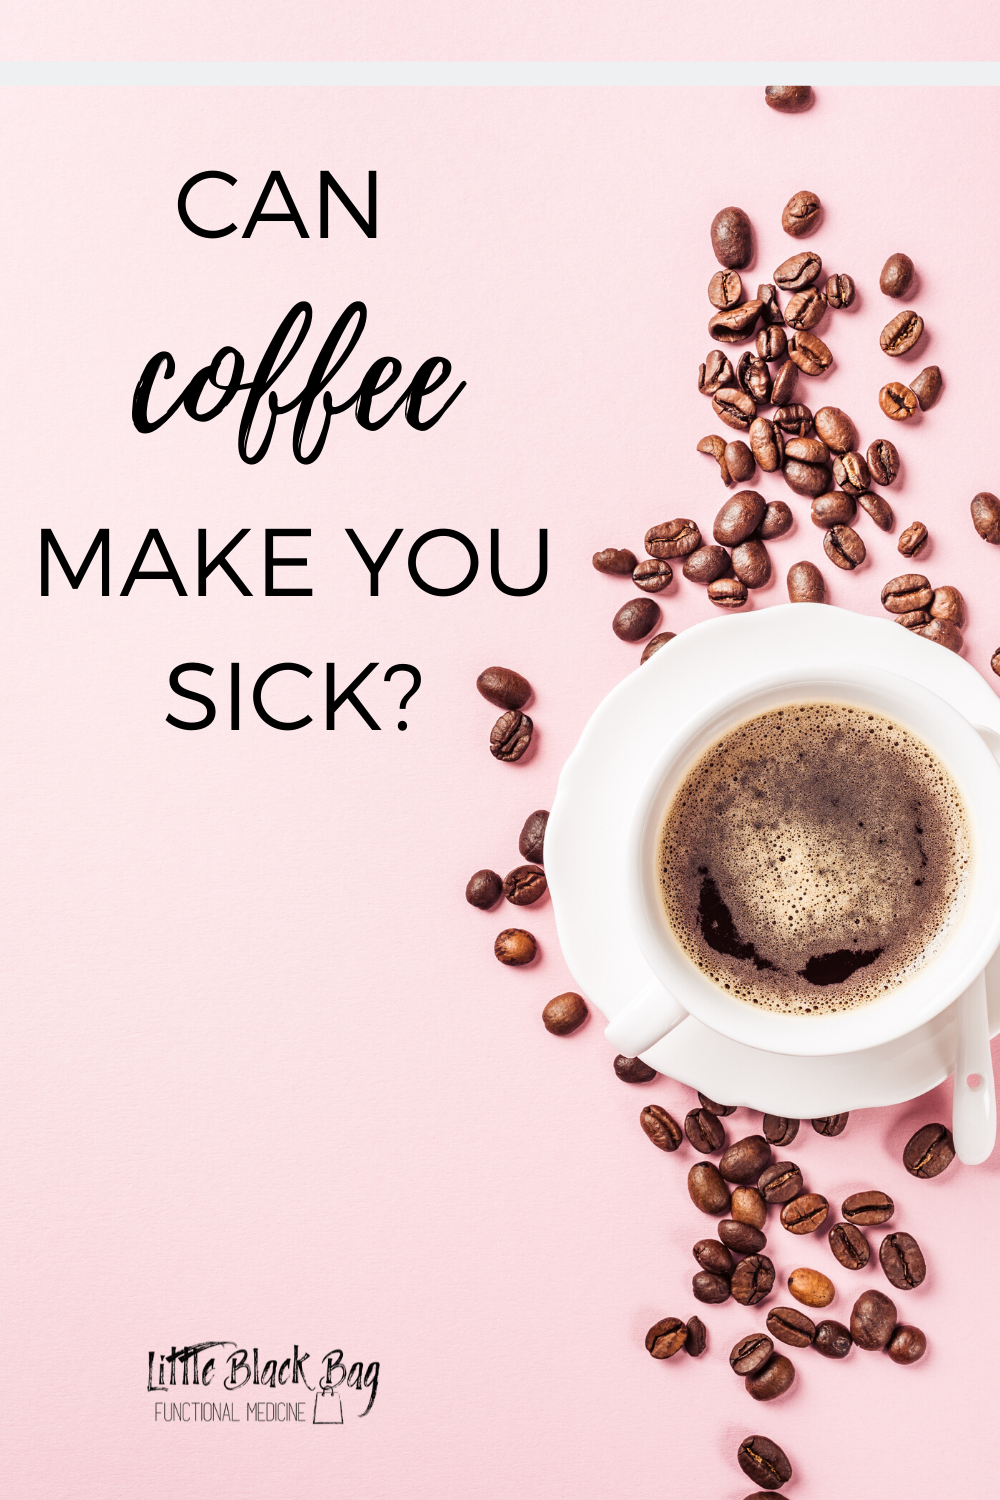 12+ Does coffee contribute to osteoporosis ideas in 2021